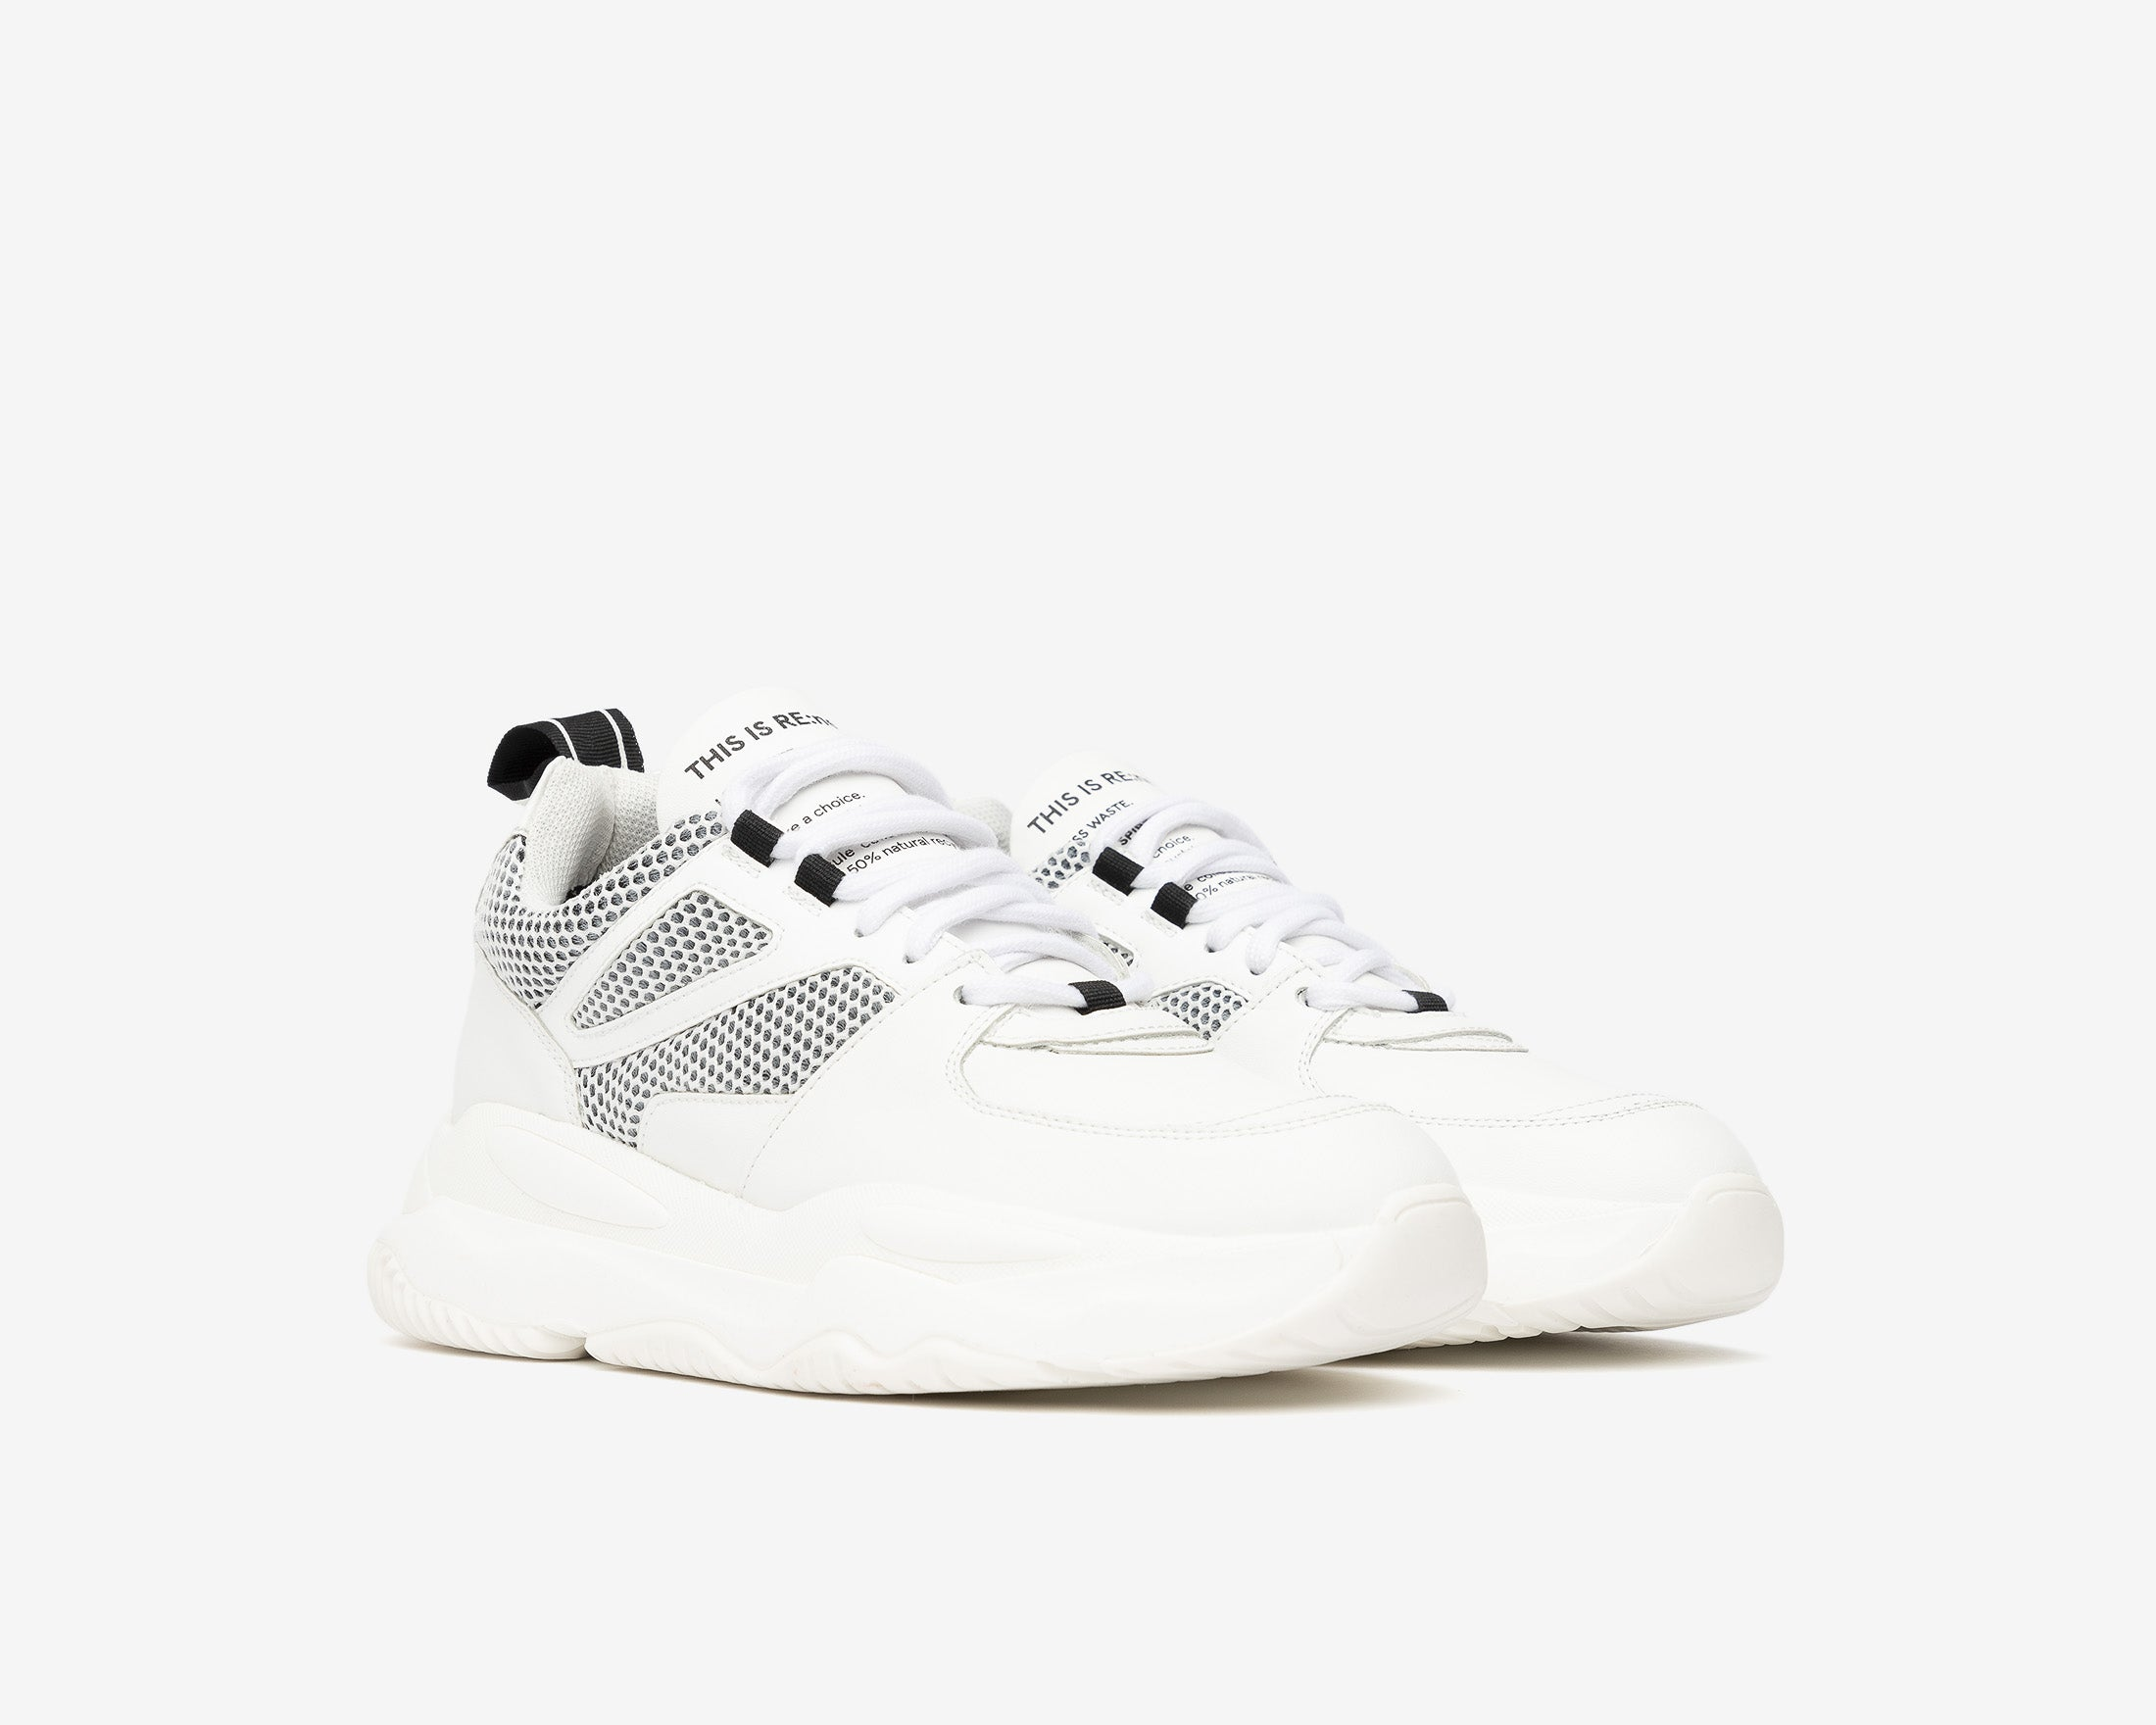 Luke Chunky Sneaker in WhiteR Recycled Leather - Side